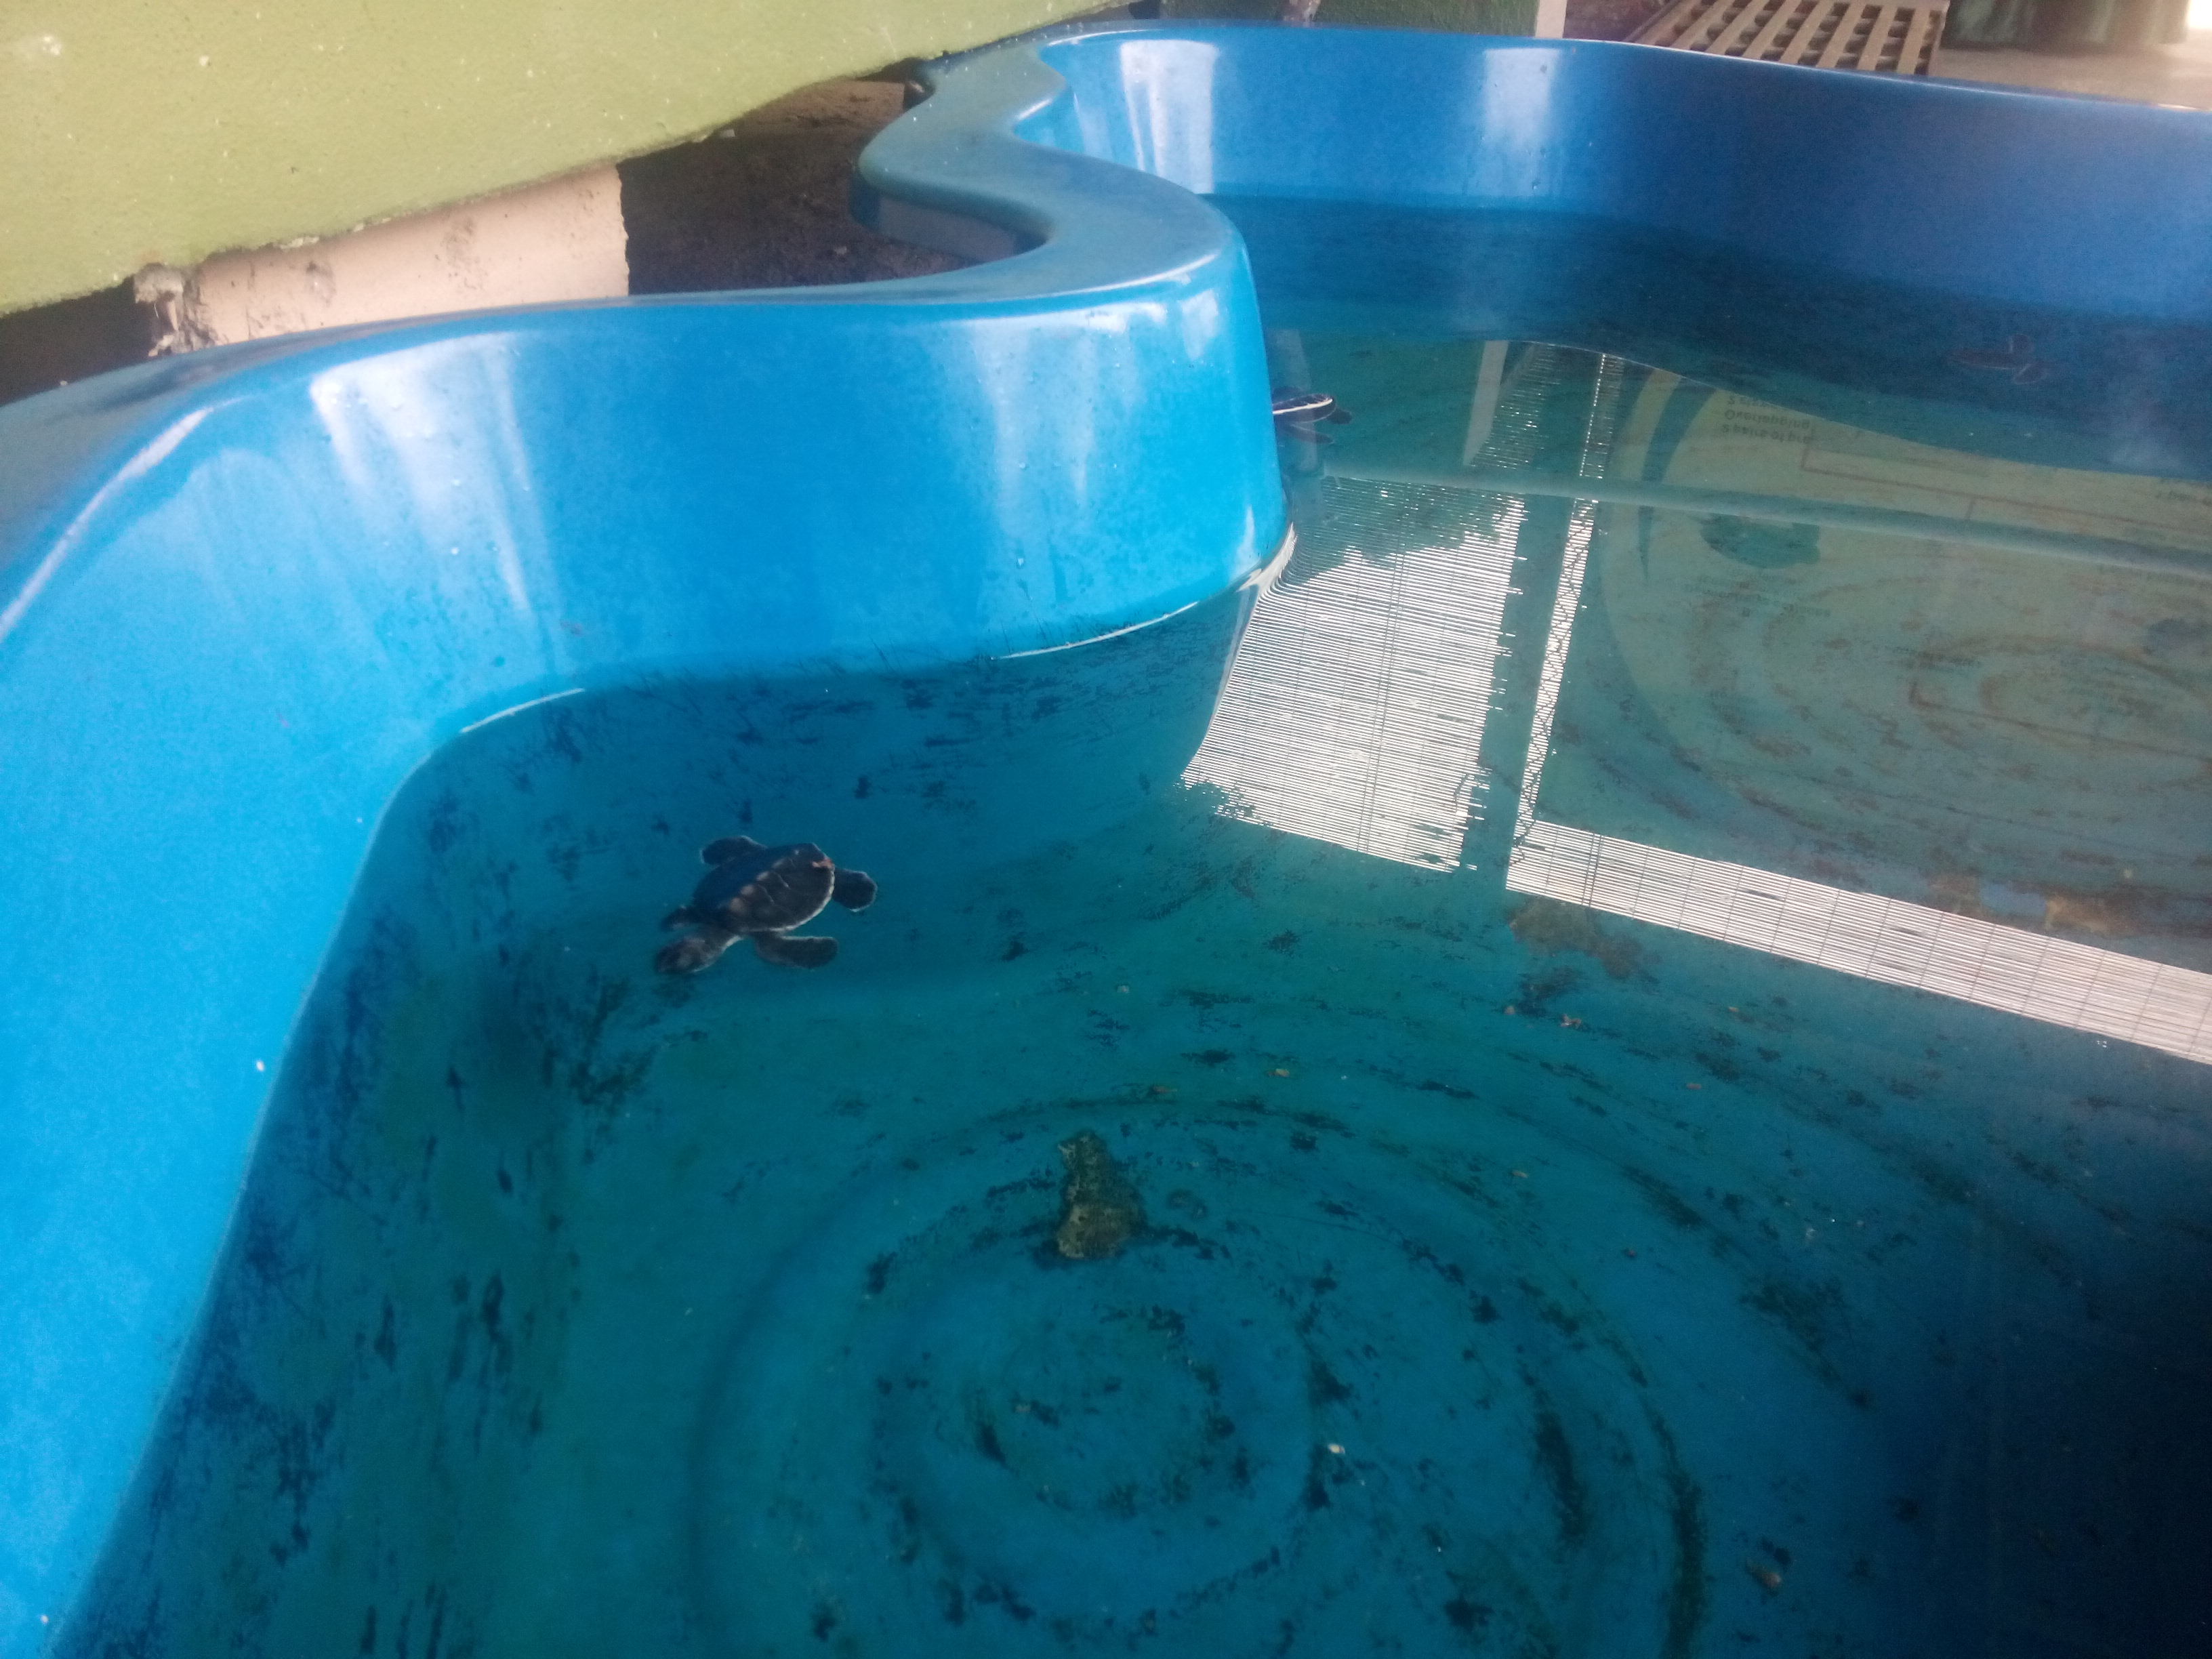 Baby turtles in a plastic blue pond